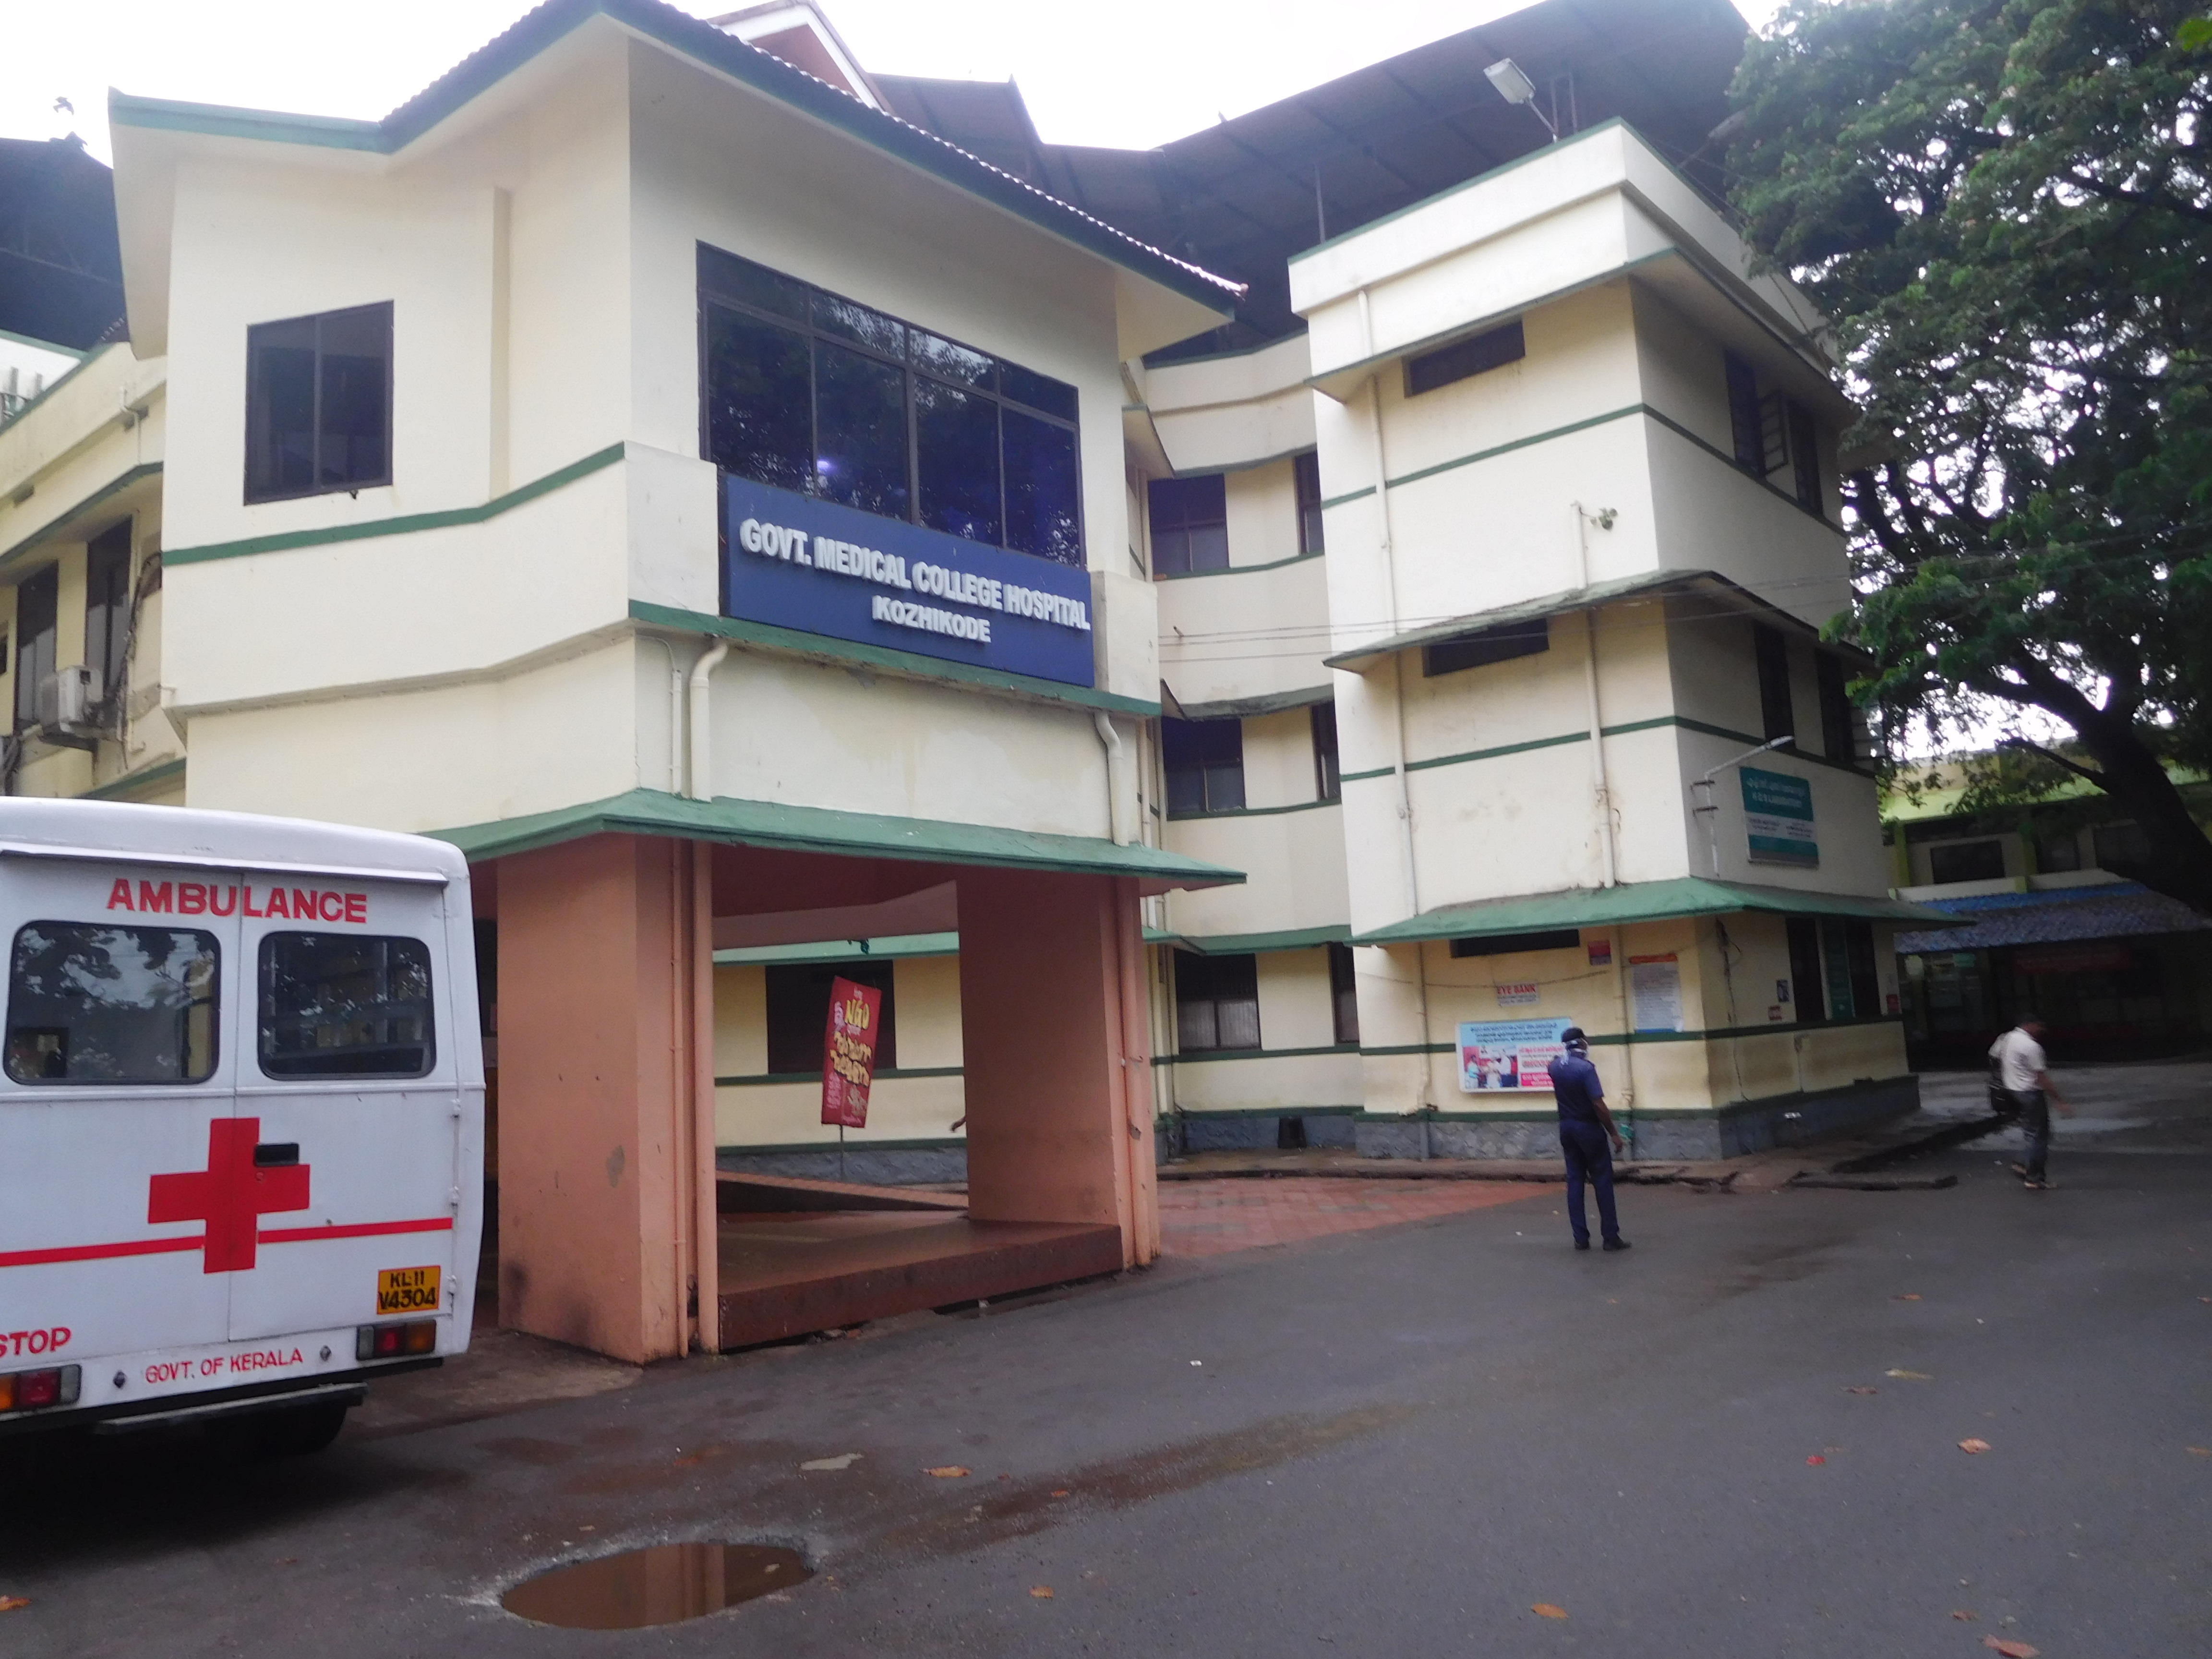 The Government Medical College Hospital in Kozhikode treated 200 patients on Monday compared to its usual volume of 3,000 a day.